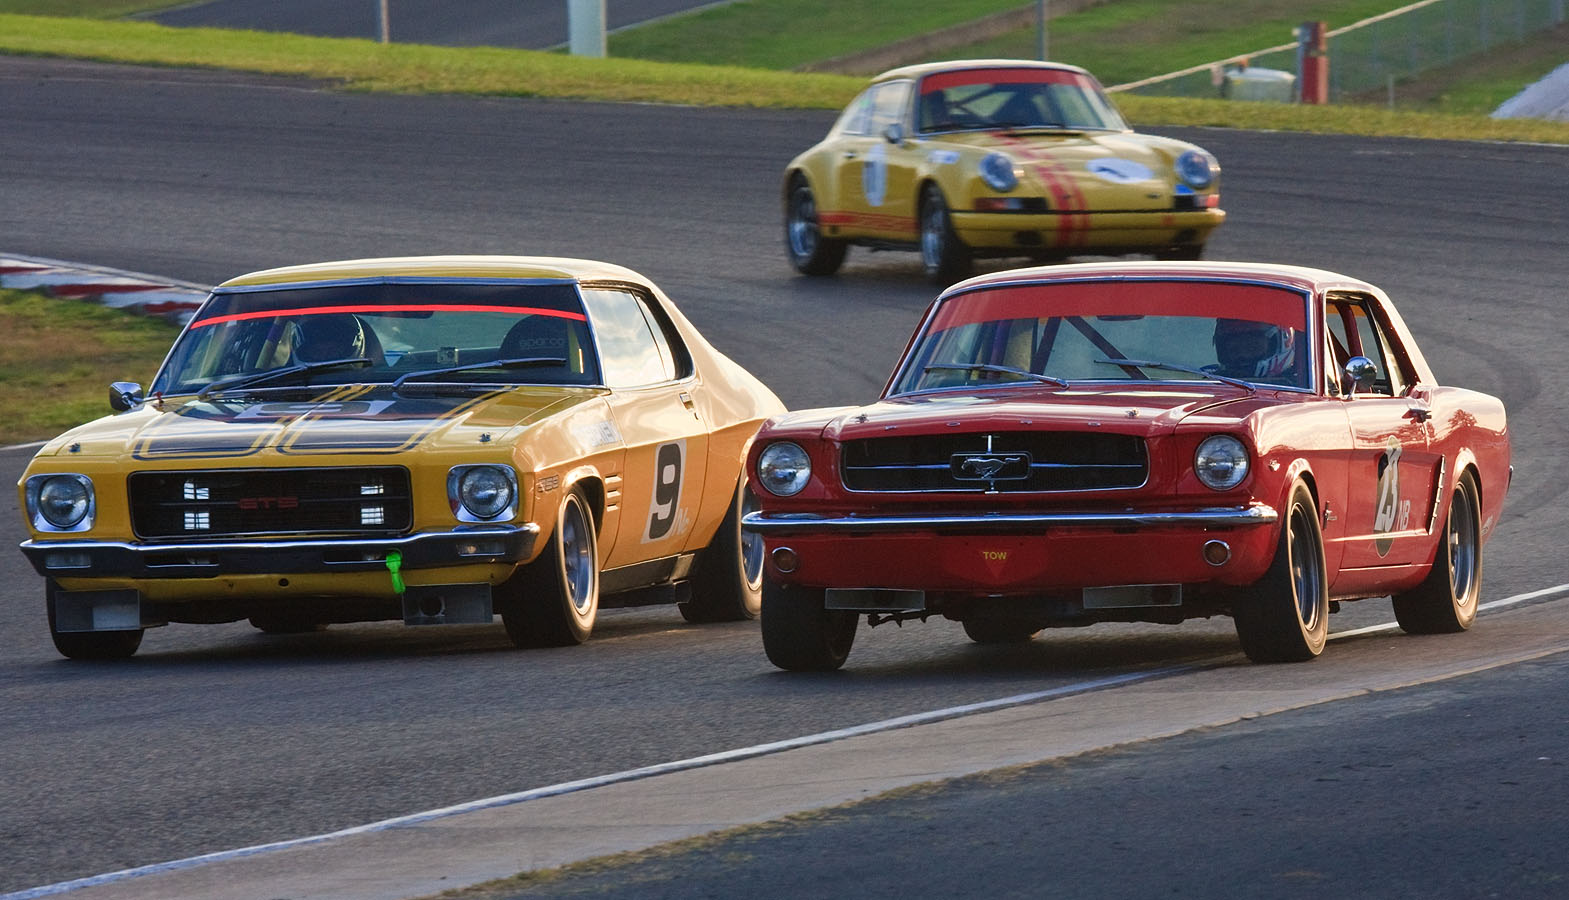 Life As A Human The Holden Vs Ford Rivalry In Australia